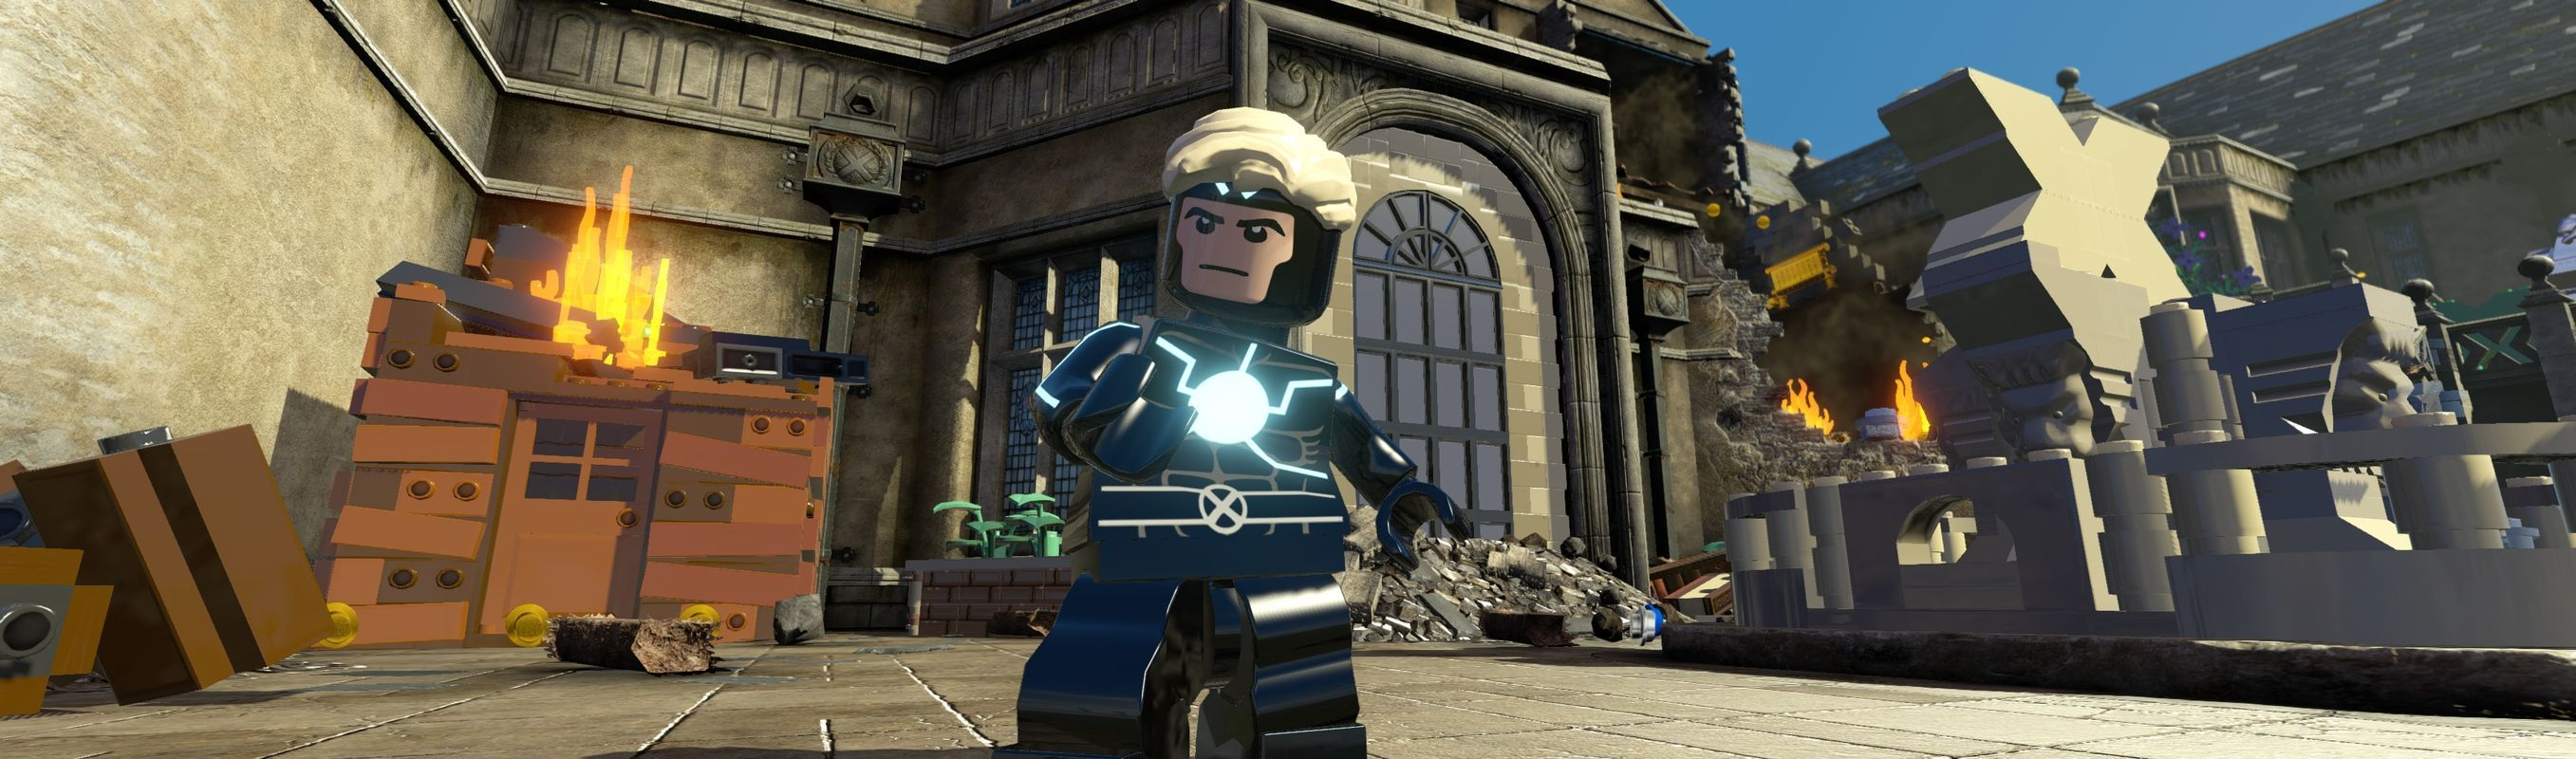 LEGO Marvel Super Heroes (PS4) - 12